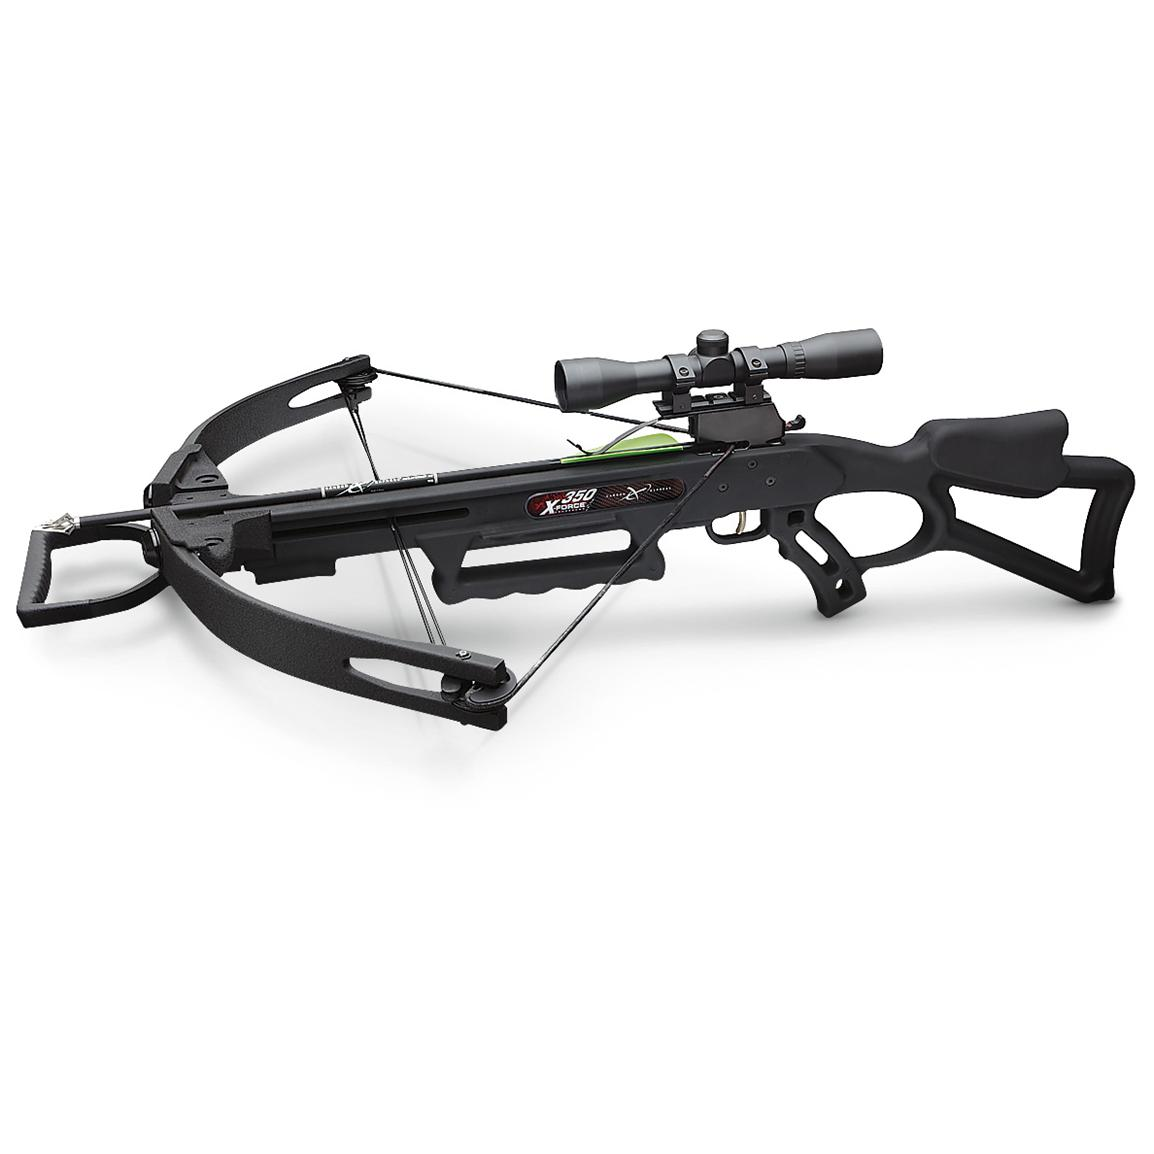 carbon express x force 350 crossbow black 223451 crossbow accessories at sportsman 39 s guide. Black Bedroom Furniture Sets. Home Design Ideas